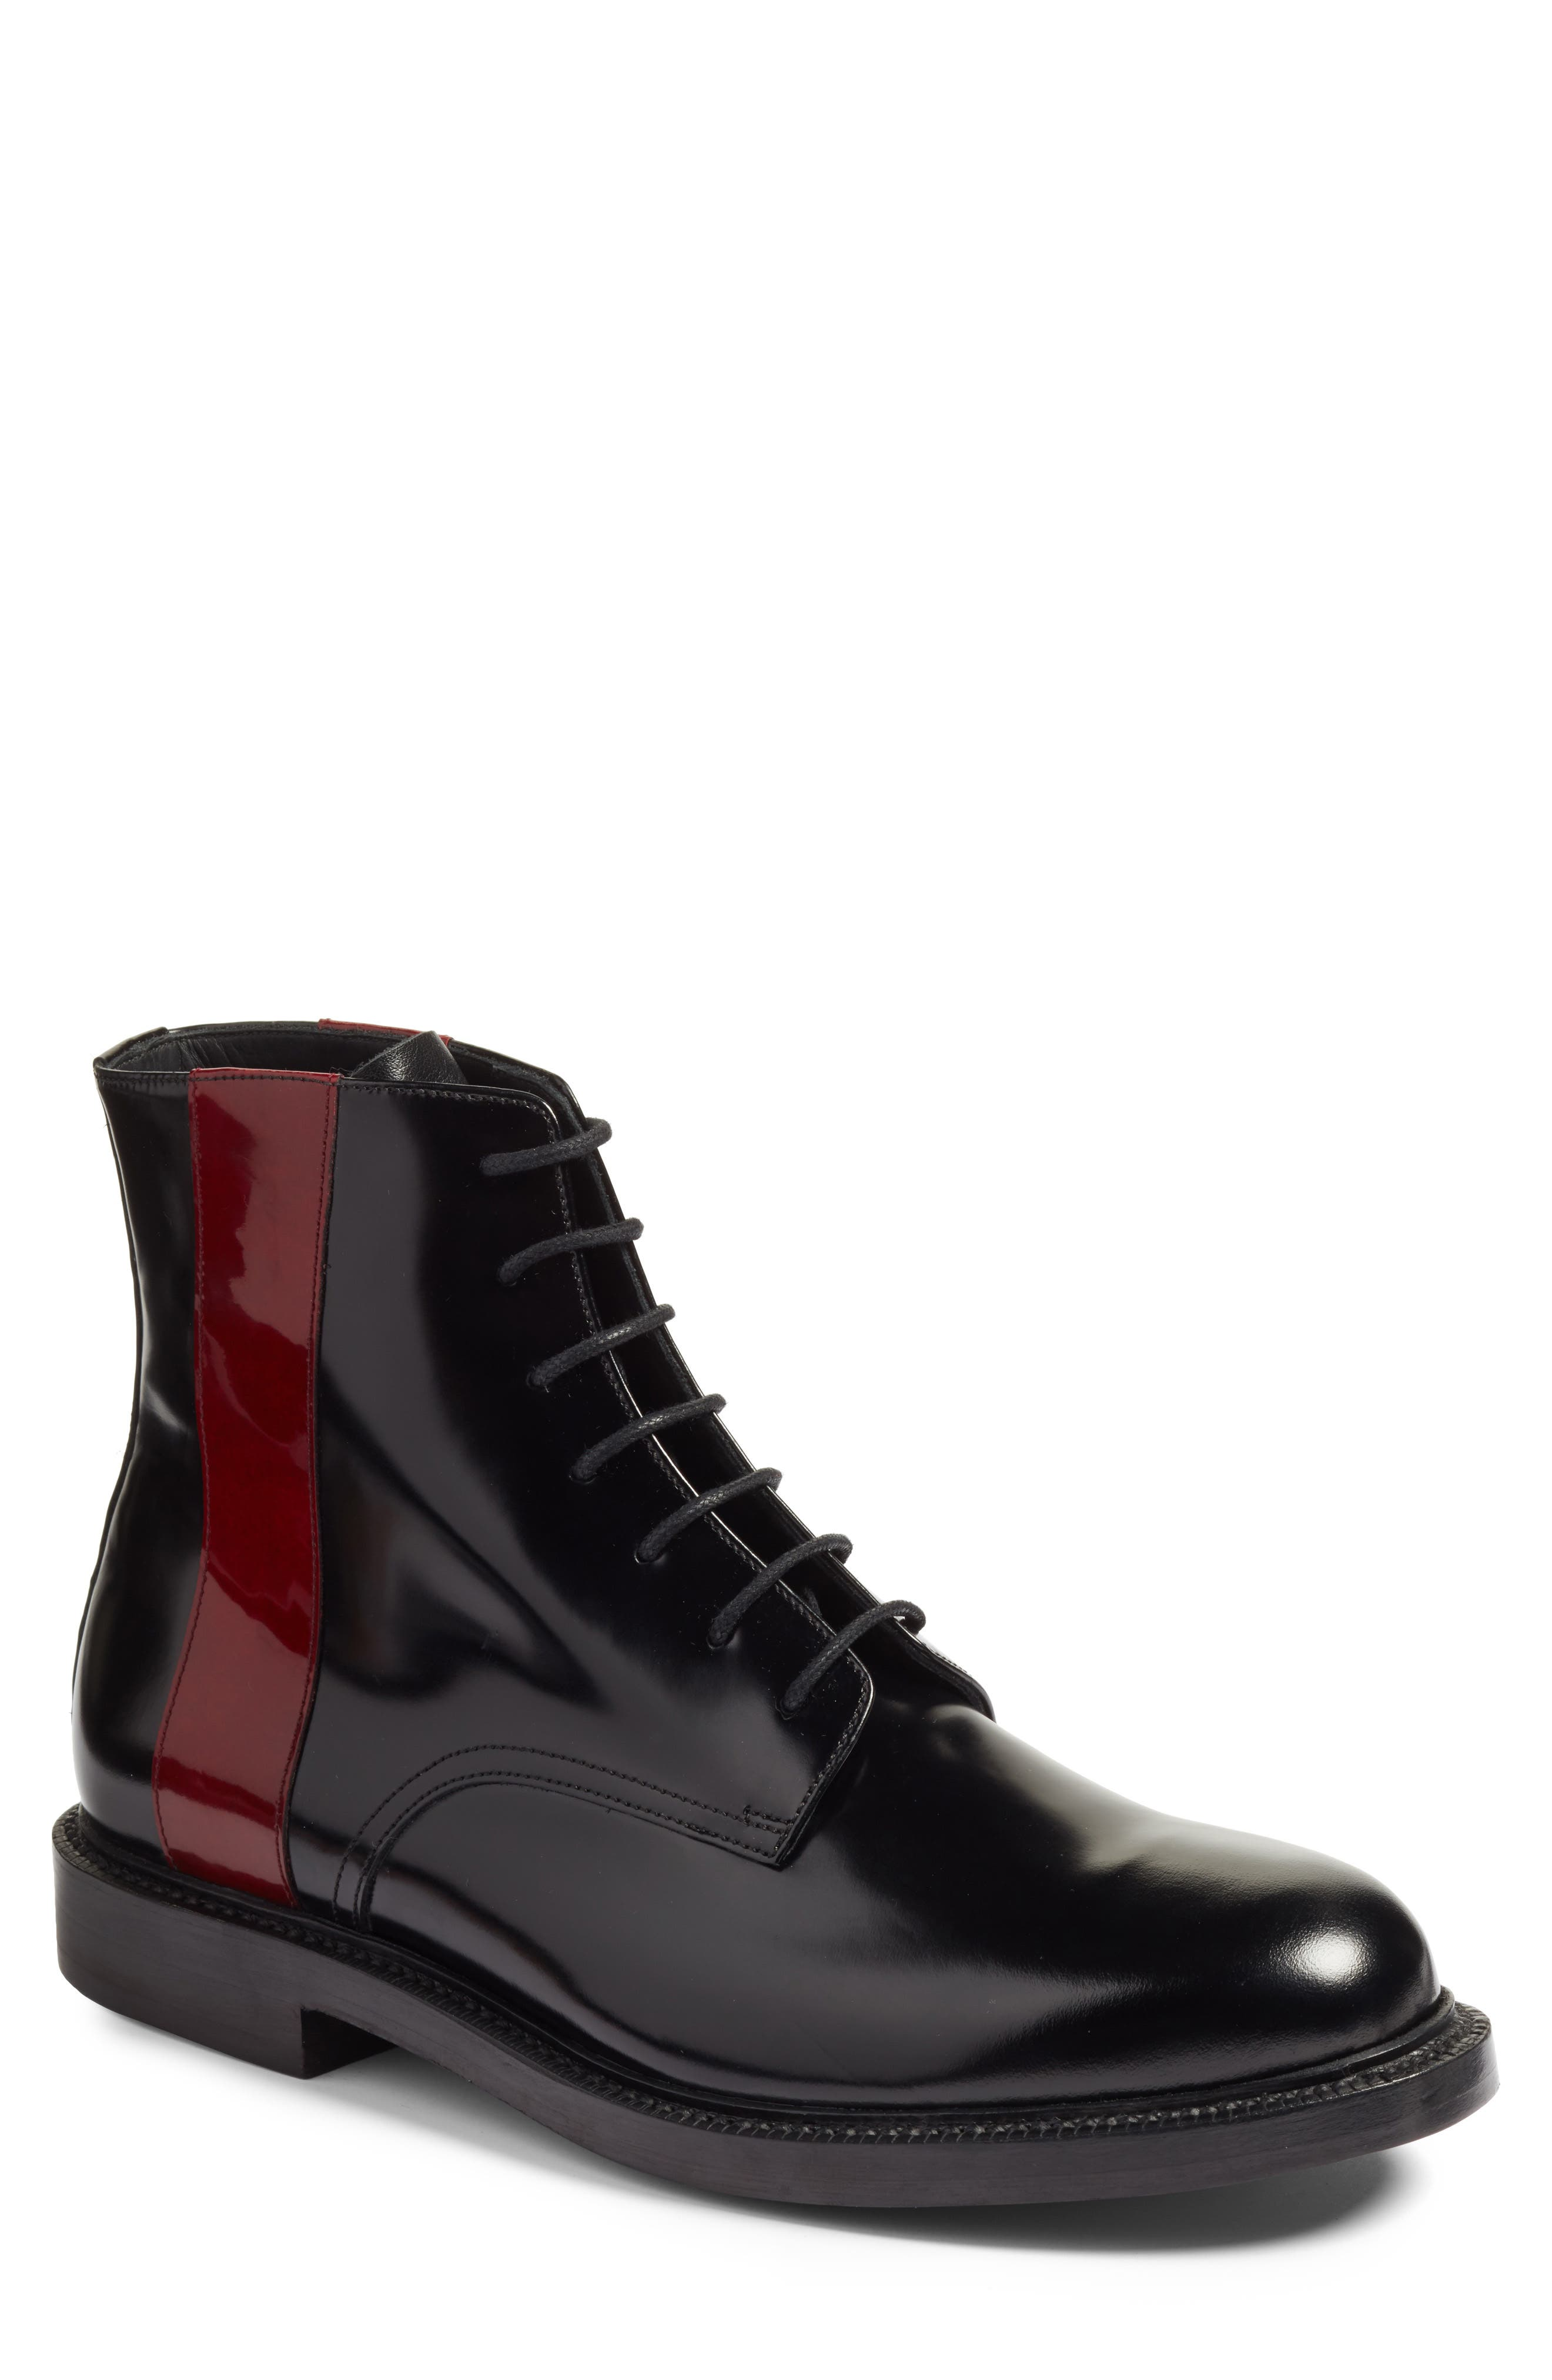 Hova Boot,                             Main thumbnail 1, color,                             Black/ Red Leather